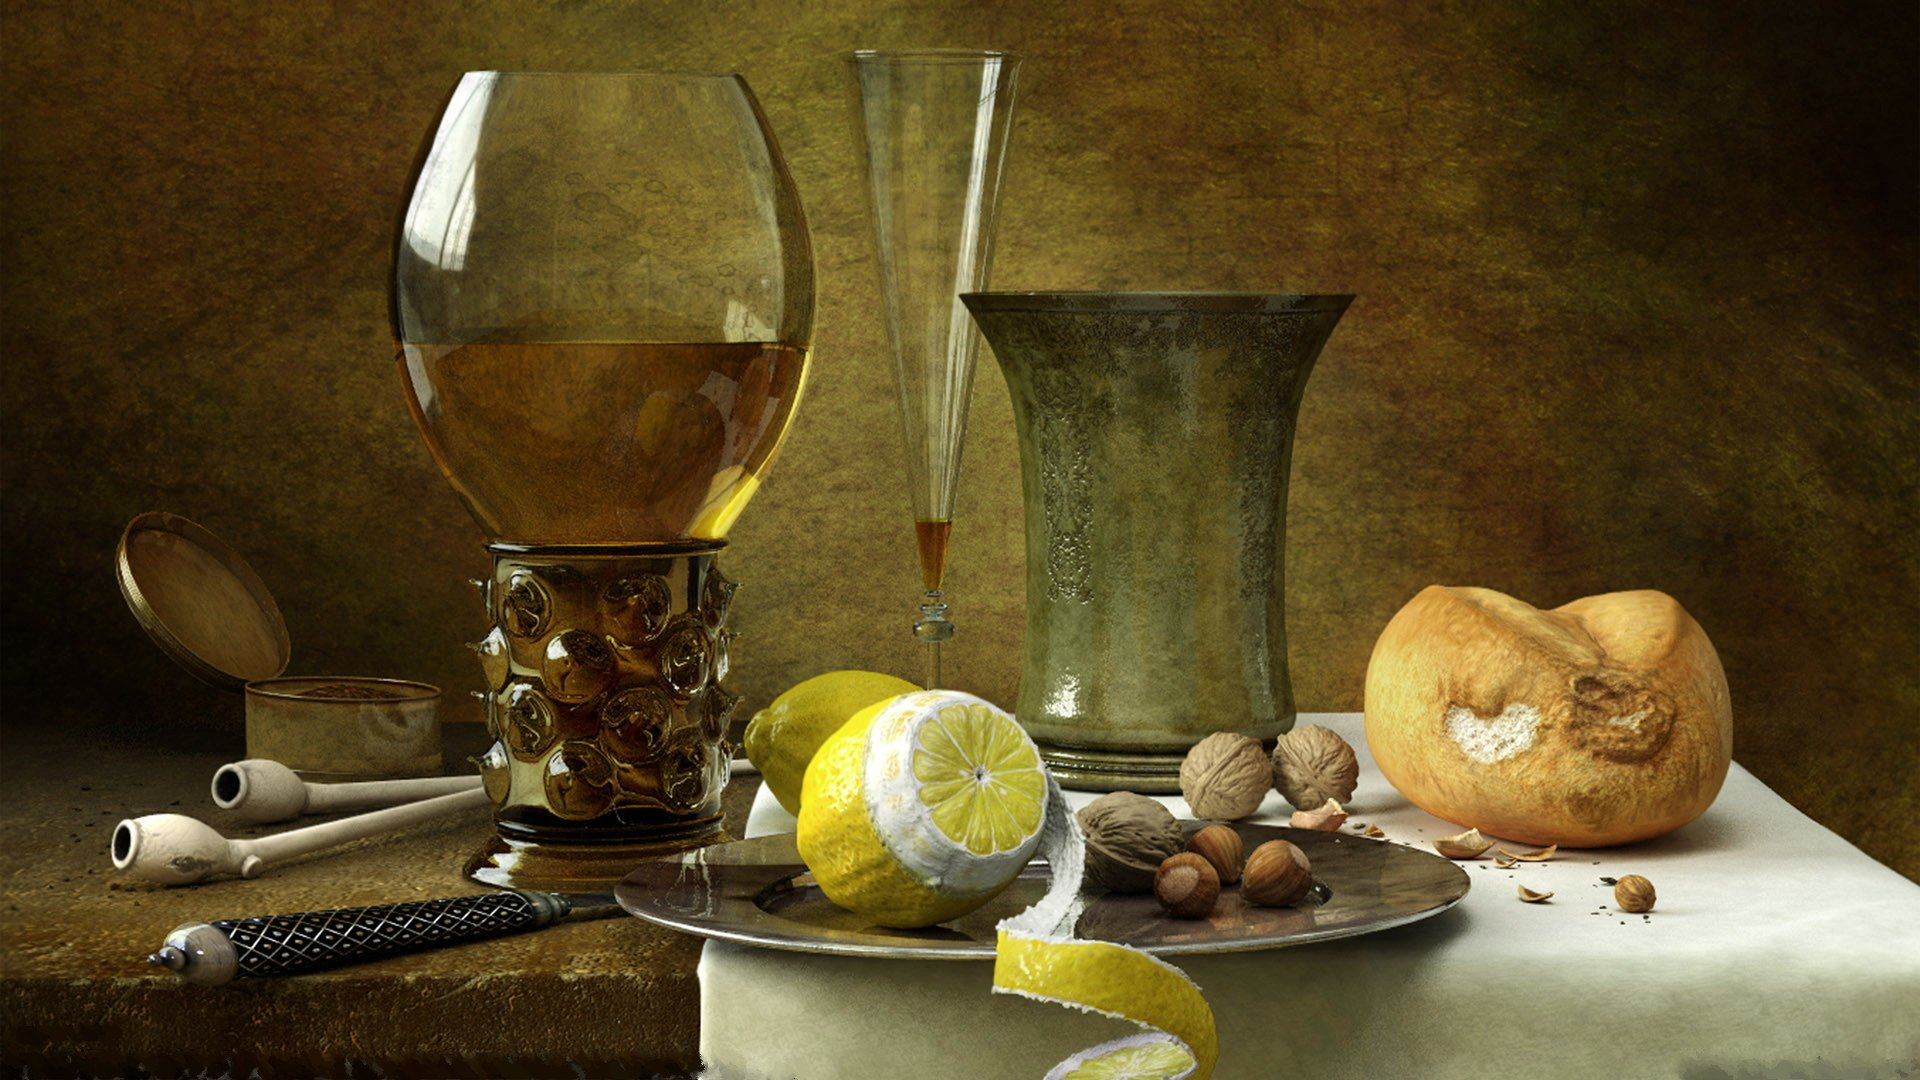 Artistic - Painting  Drink Artistic Food Still Life Lemon Almond Wallpaper